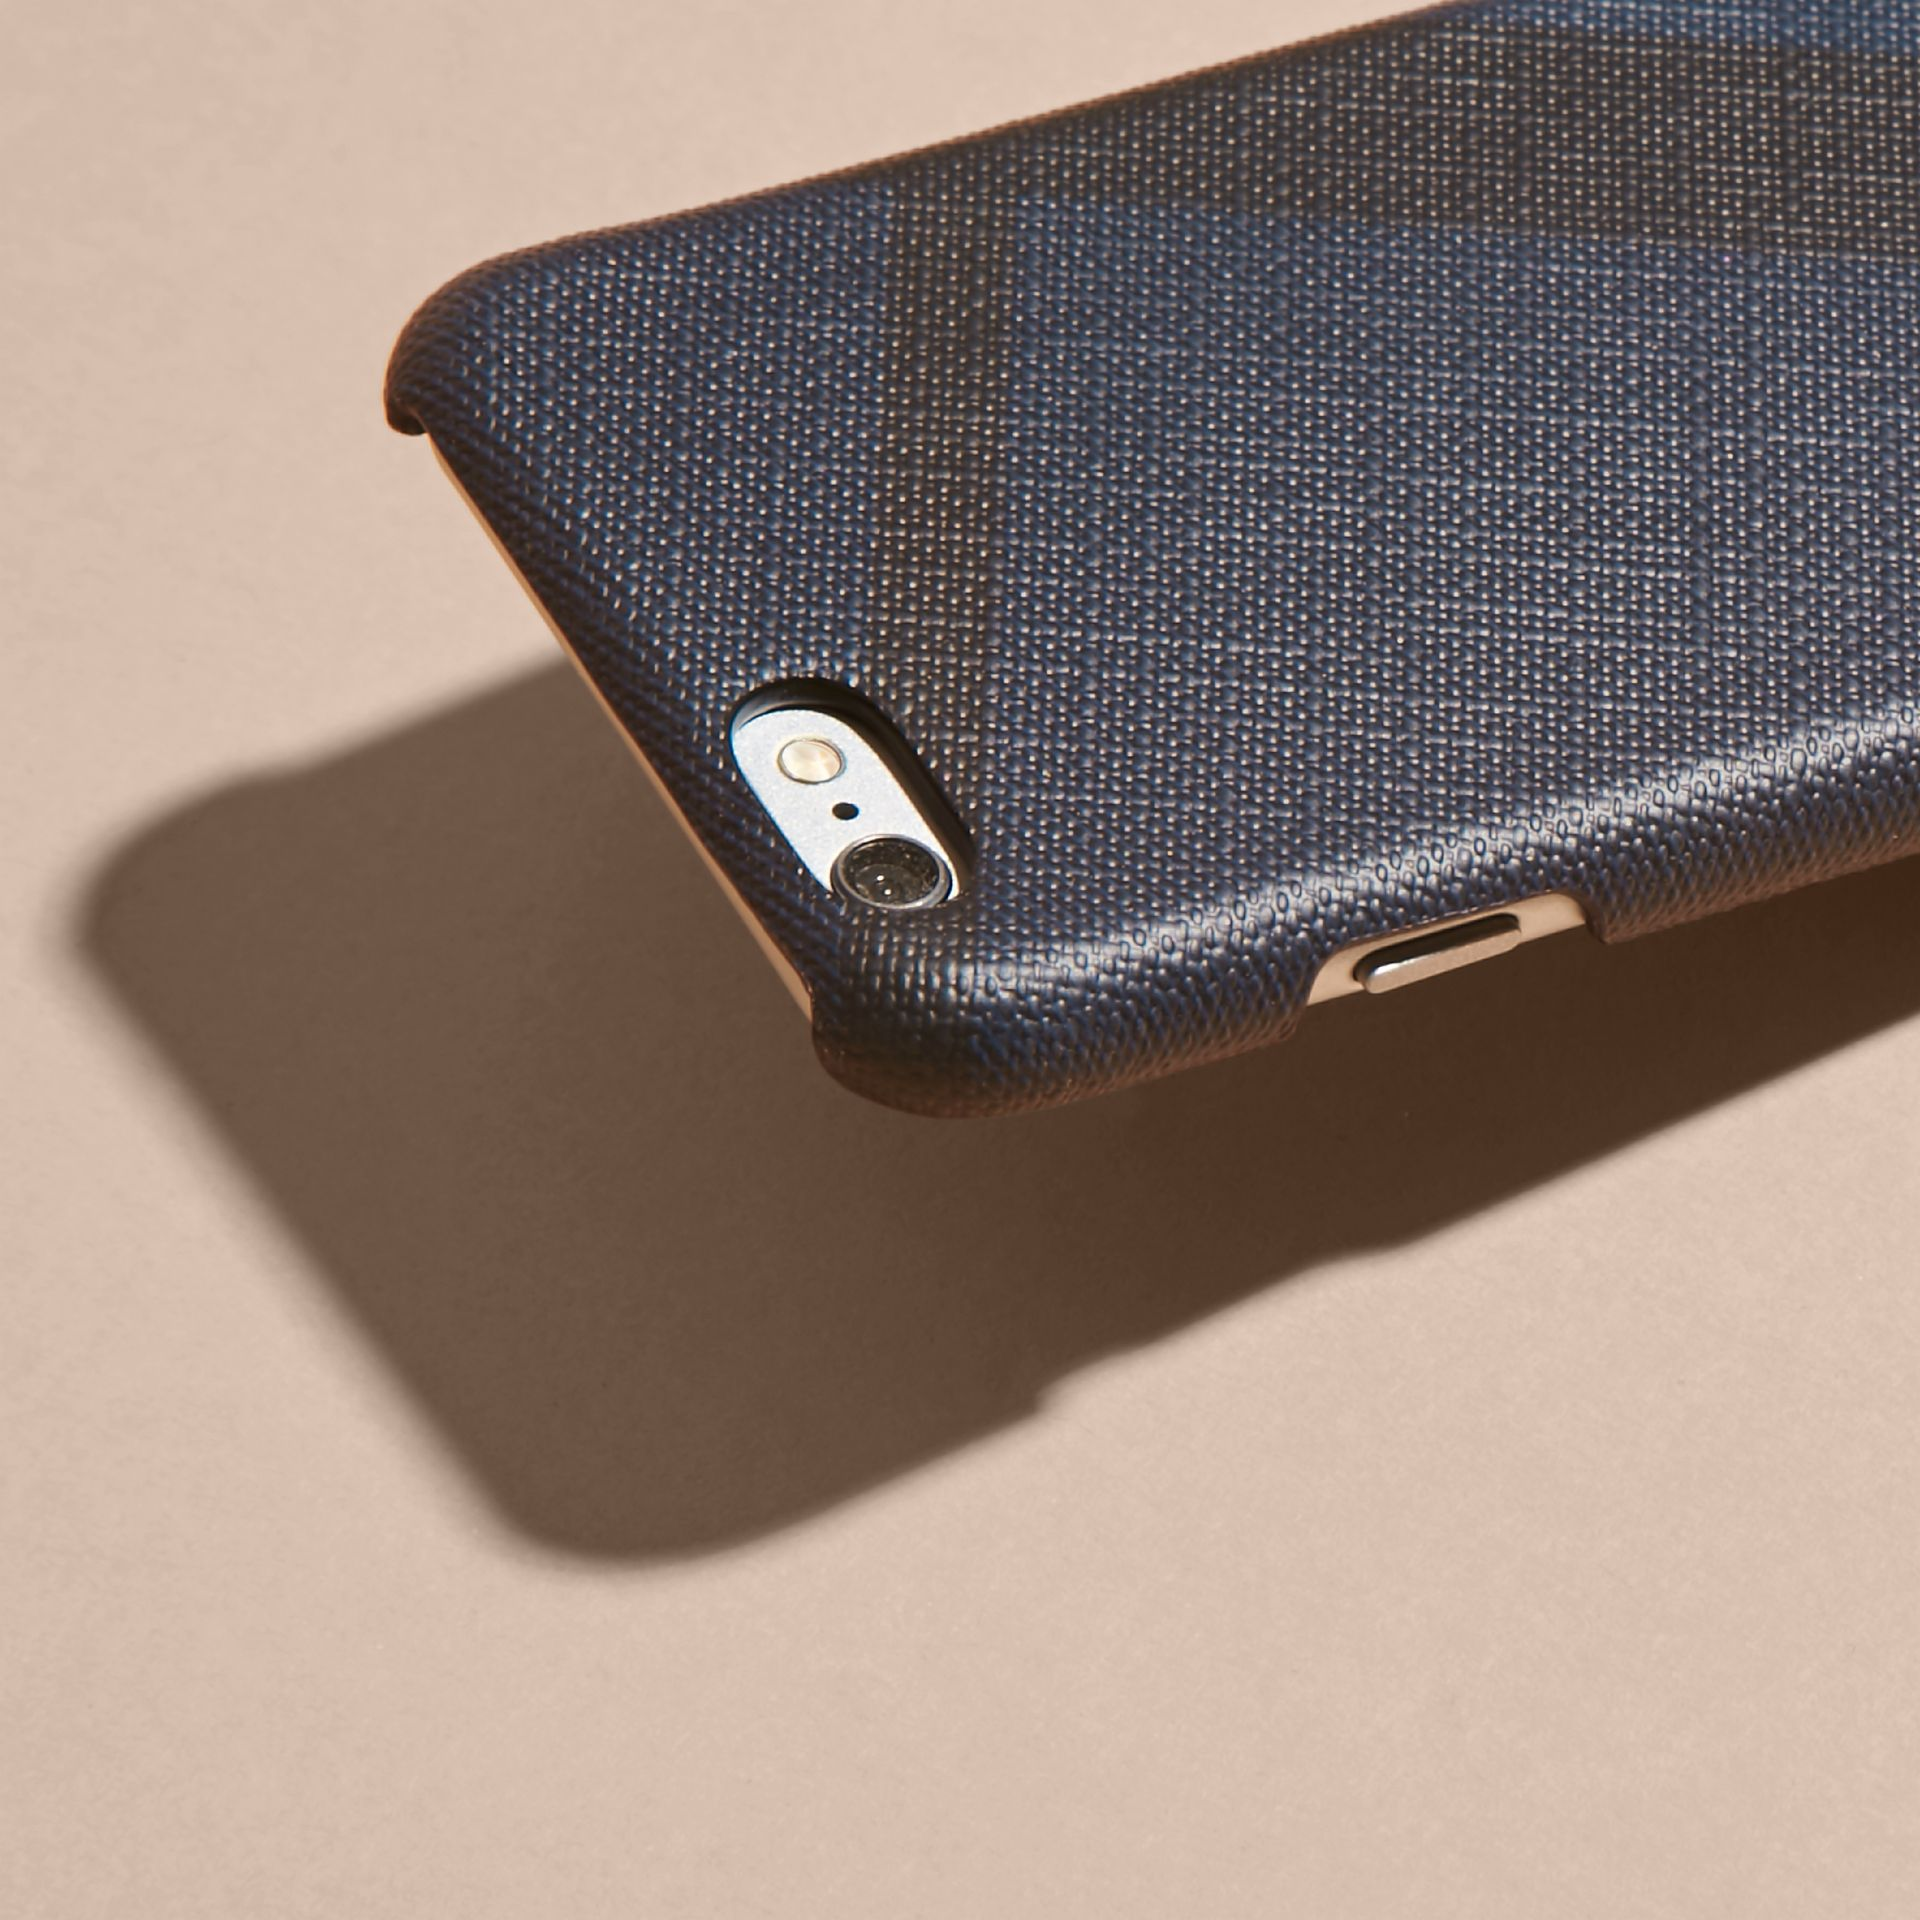 iPhone 7-Etui in London Check (Marineblau/schwarz) - Damen | Burberry - Galerie-Bild 3